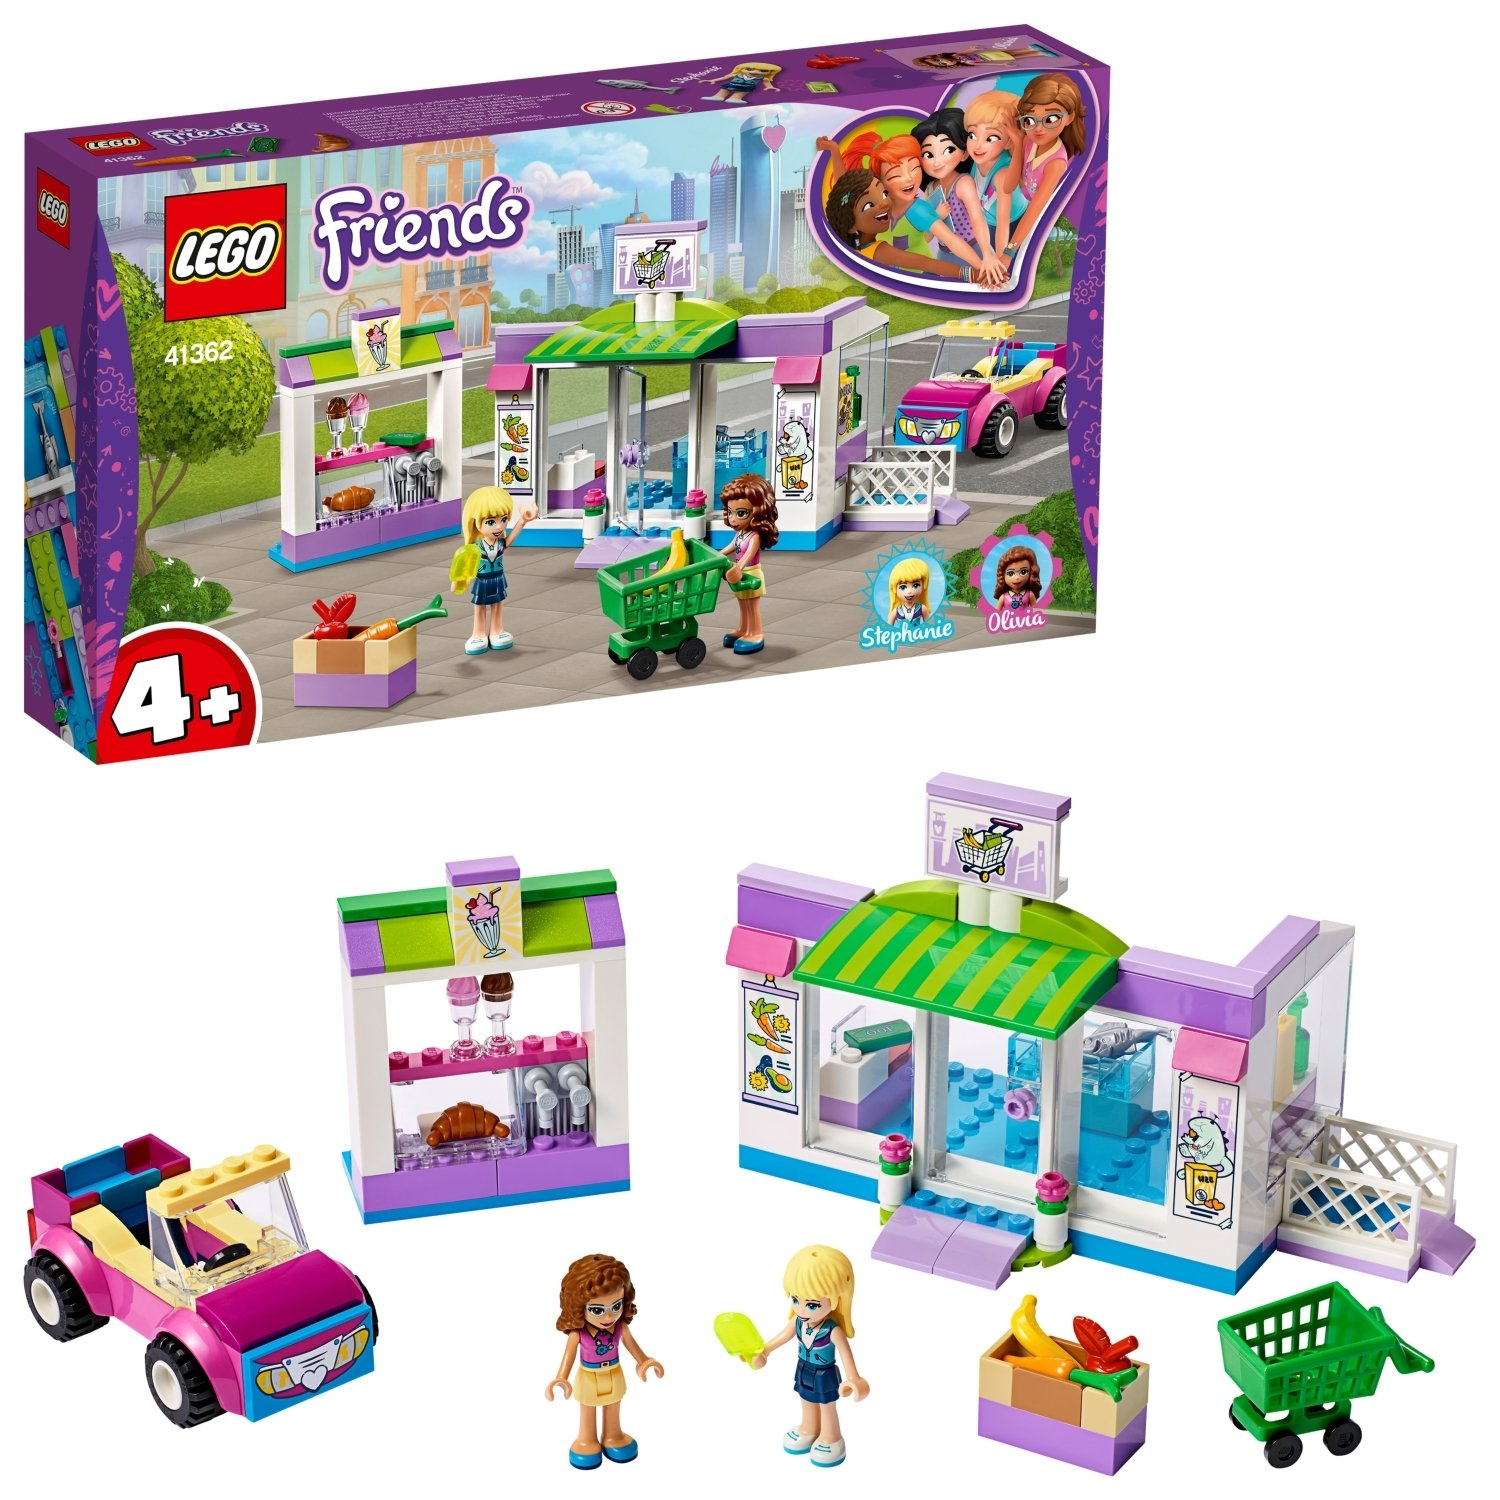 LEGO Friends Heartlake City Market Playset - 41362